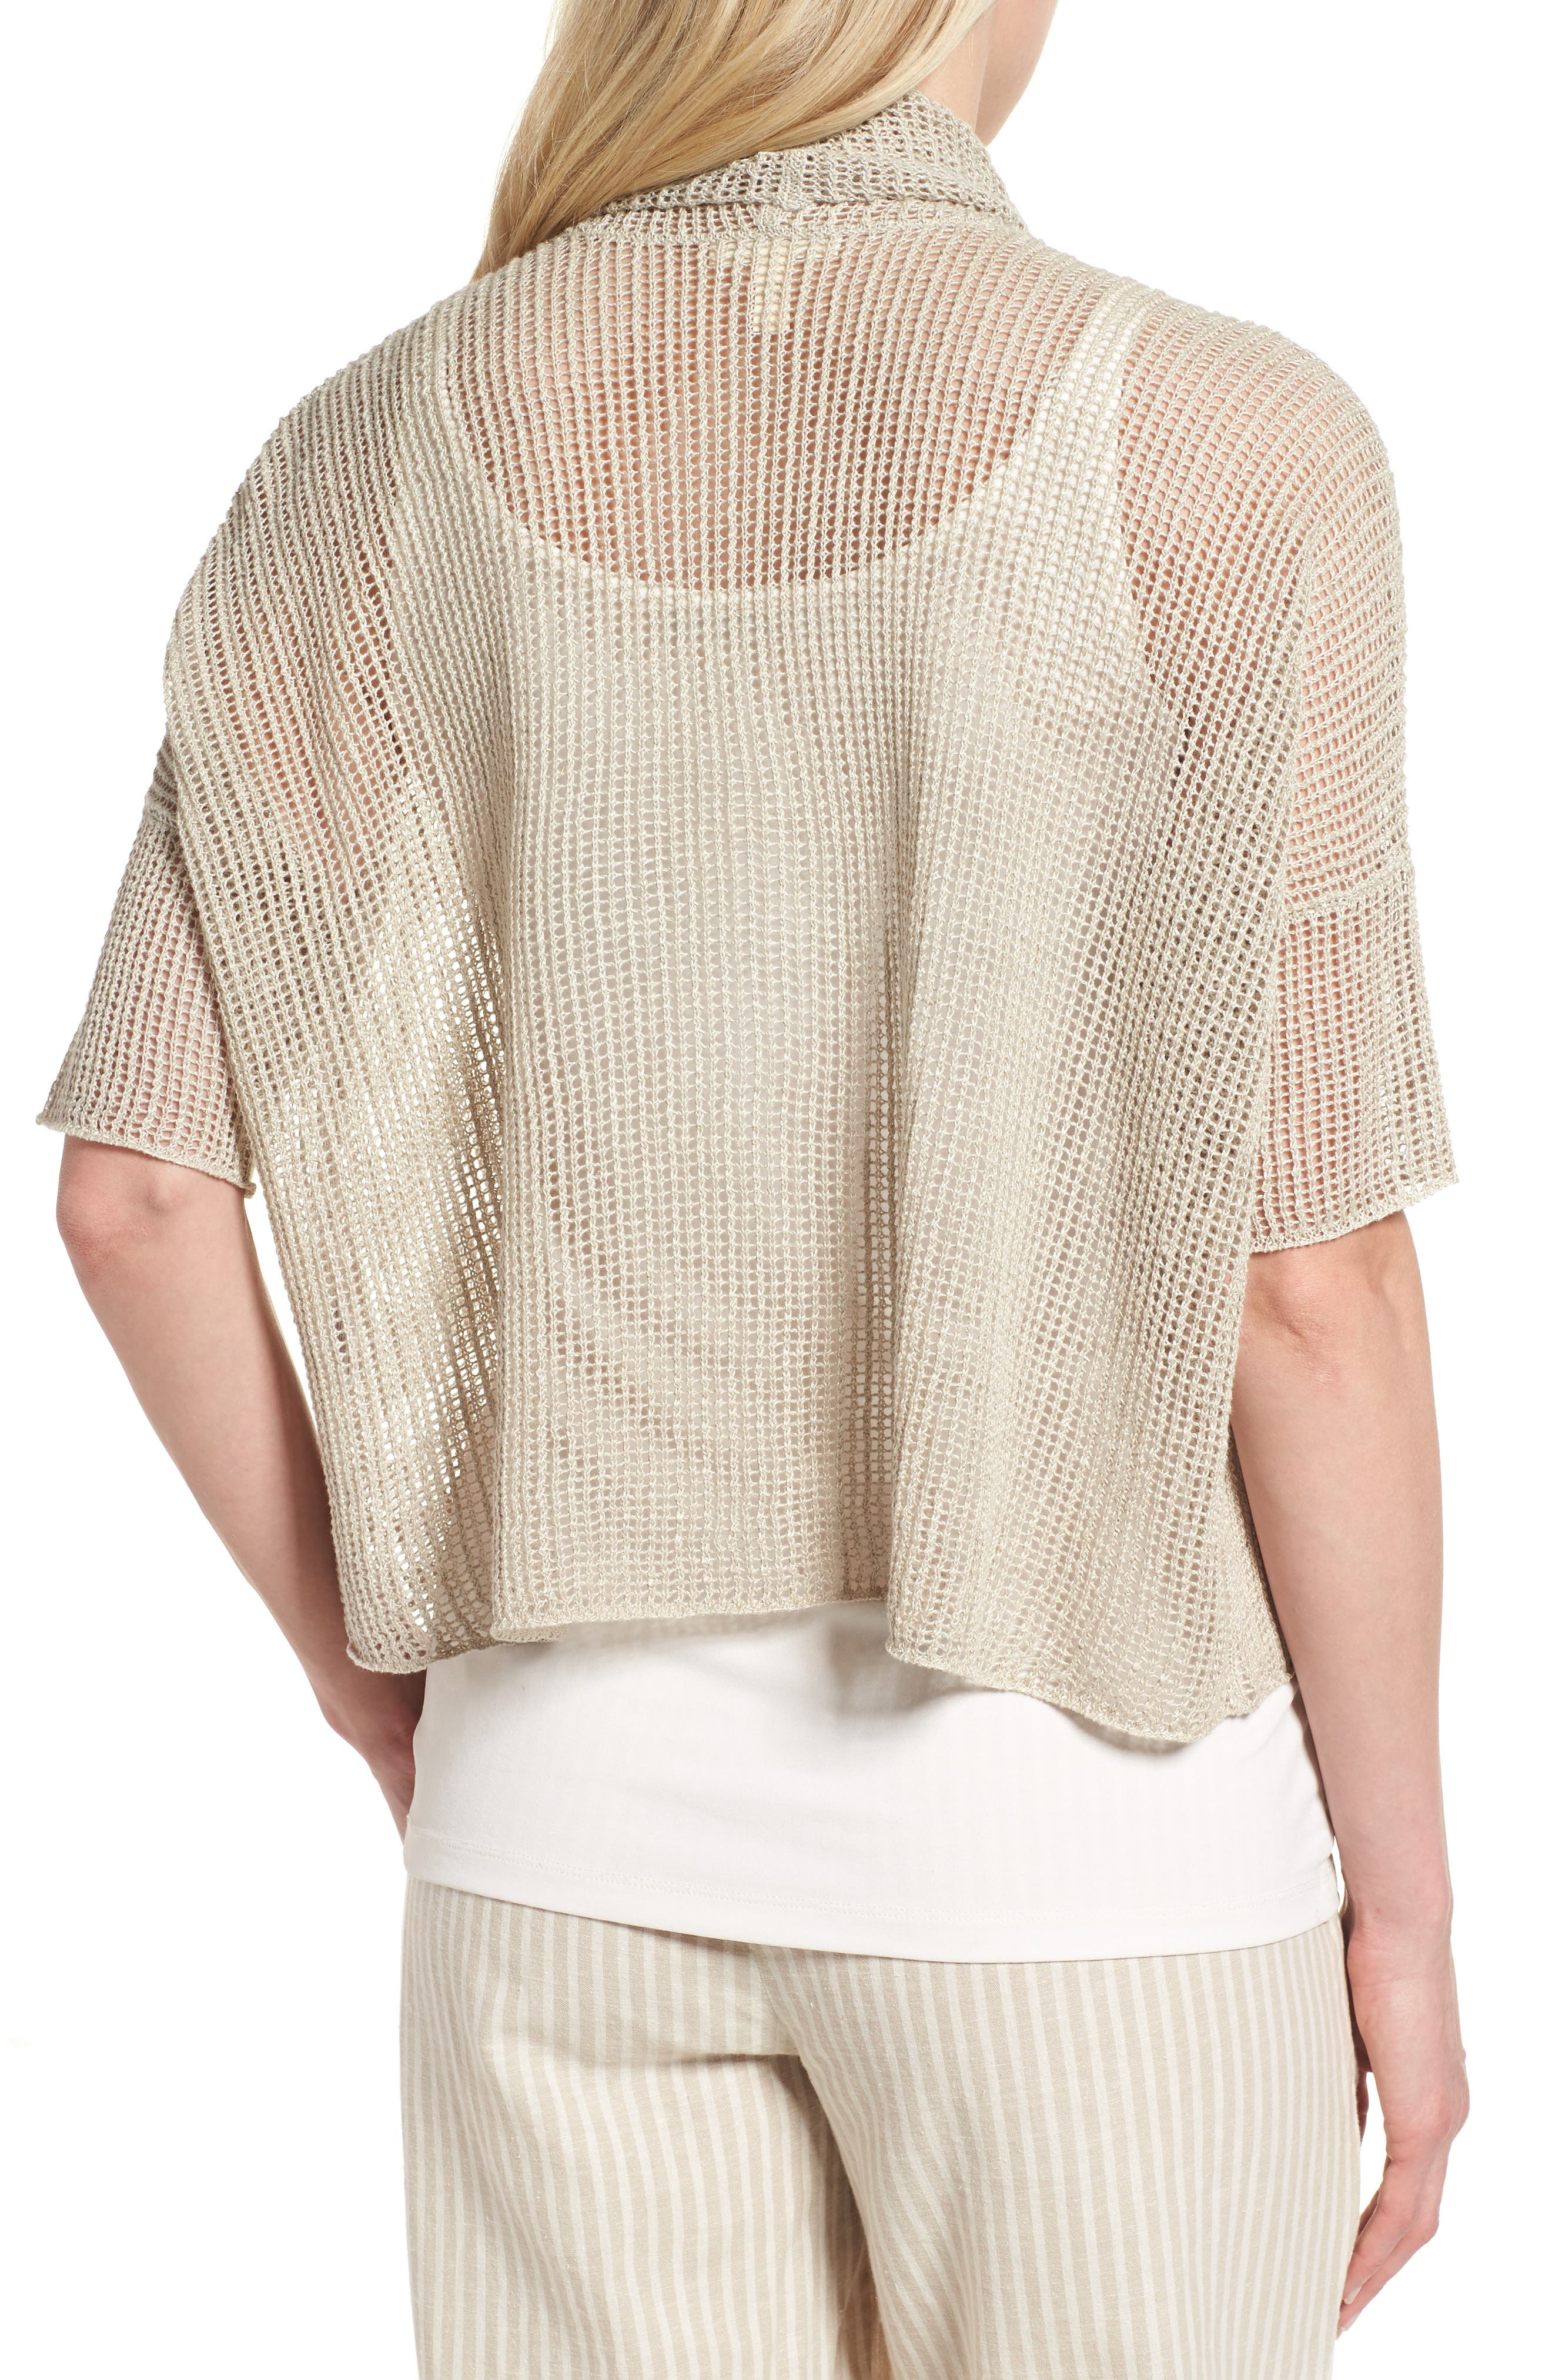 Boxy Organic Linen Cardigan,                             Alternate thumbnail 8, color,